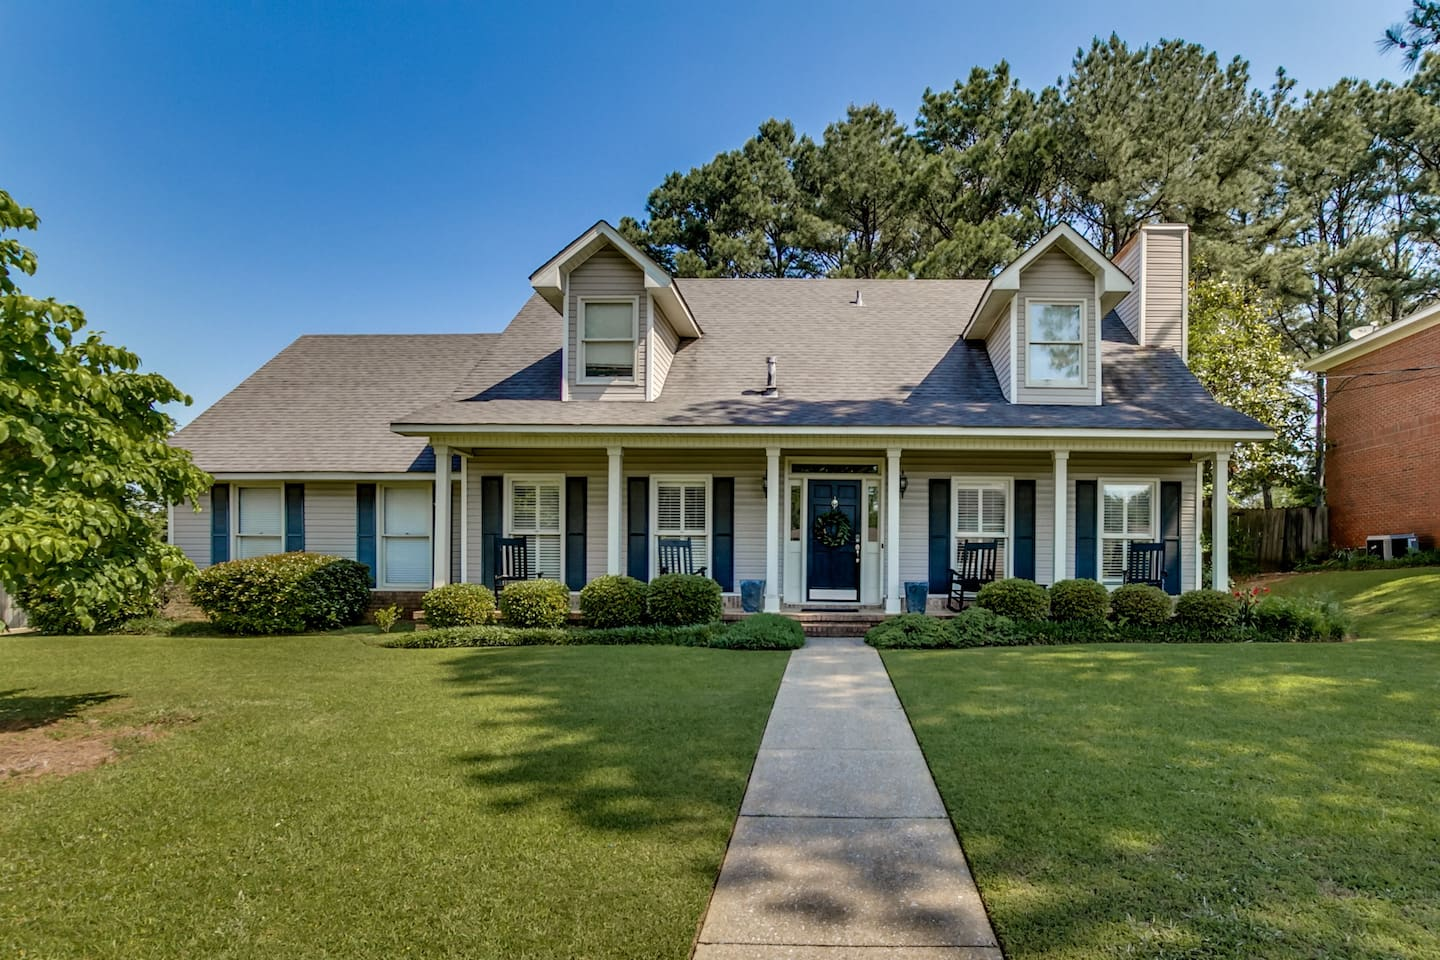 Southern Living Style Traditional Home with loads of Charm - CLOSE TO UA! Special Rates for Gamedays, UA events &  families traveling to Tuscaloosa!